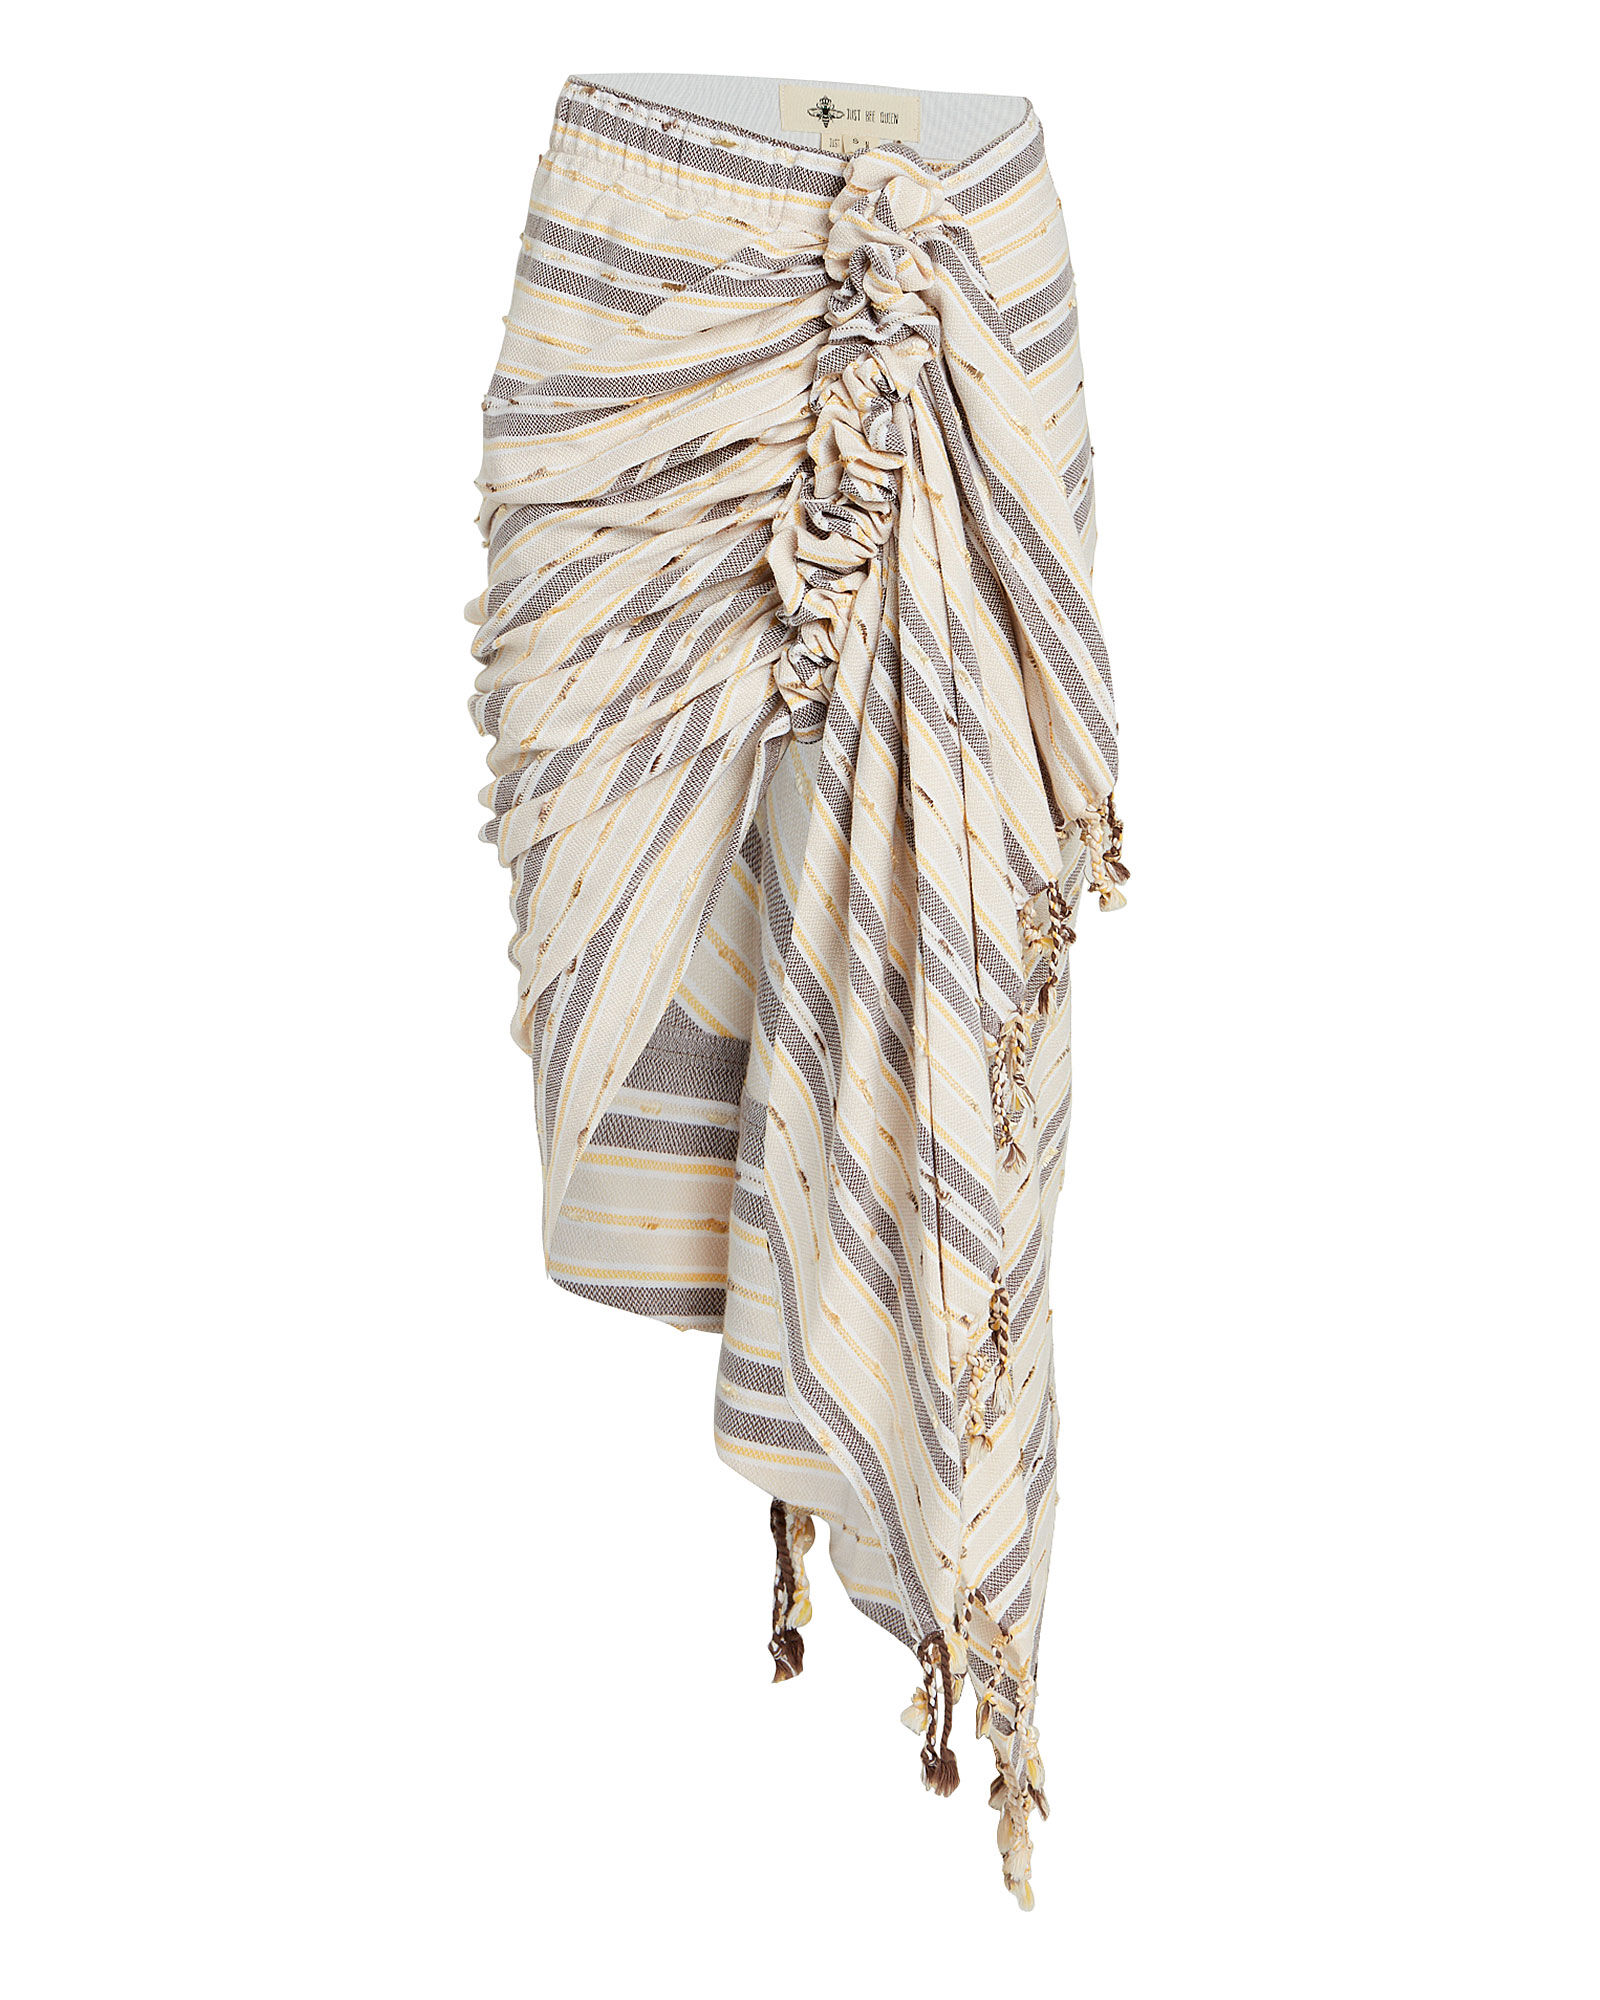 Tulum Ruched High-Low Skirt, BEIGE/NAVY, hi-res